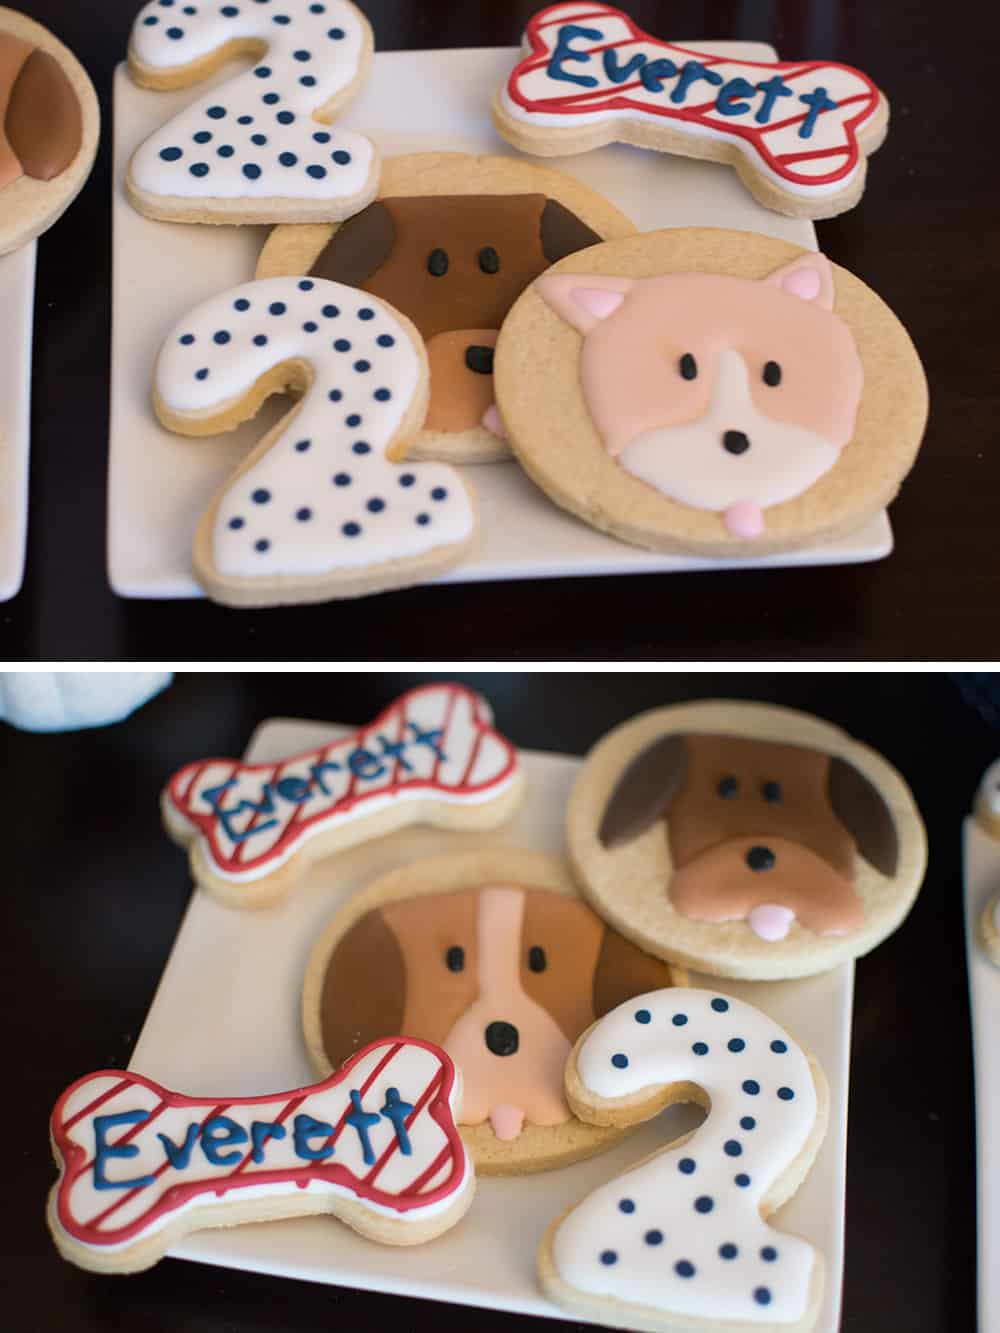 Puppy Party Sugar Cookies from Amy's Cupcake Shoppe